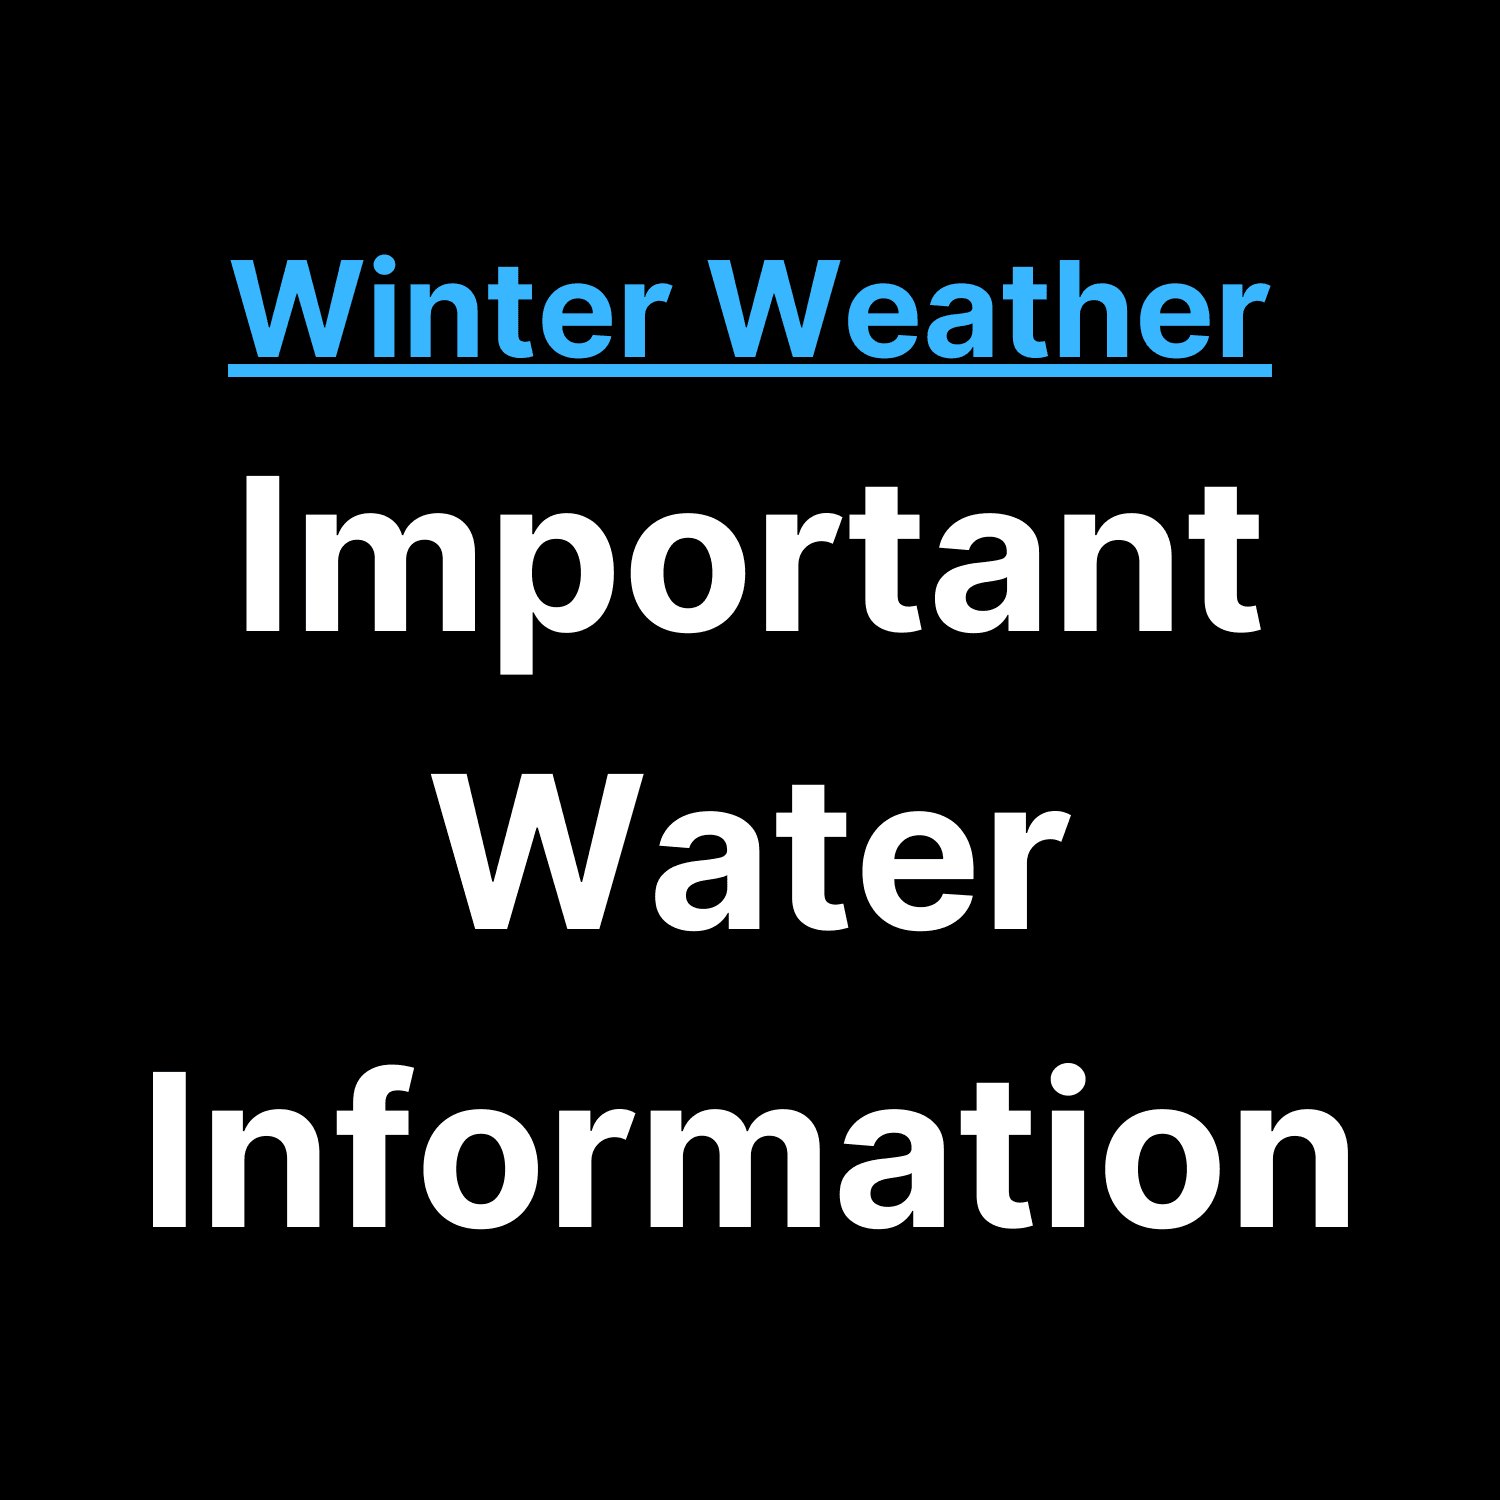 Water Information Image